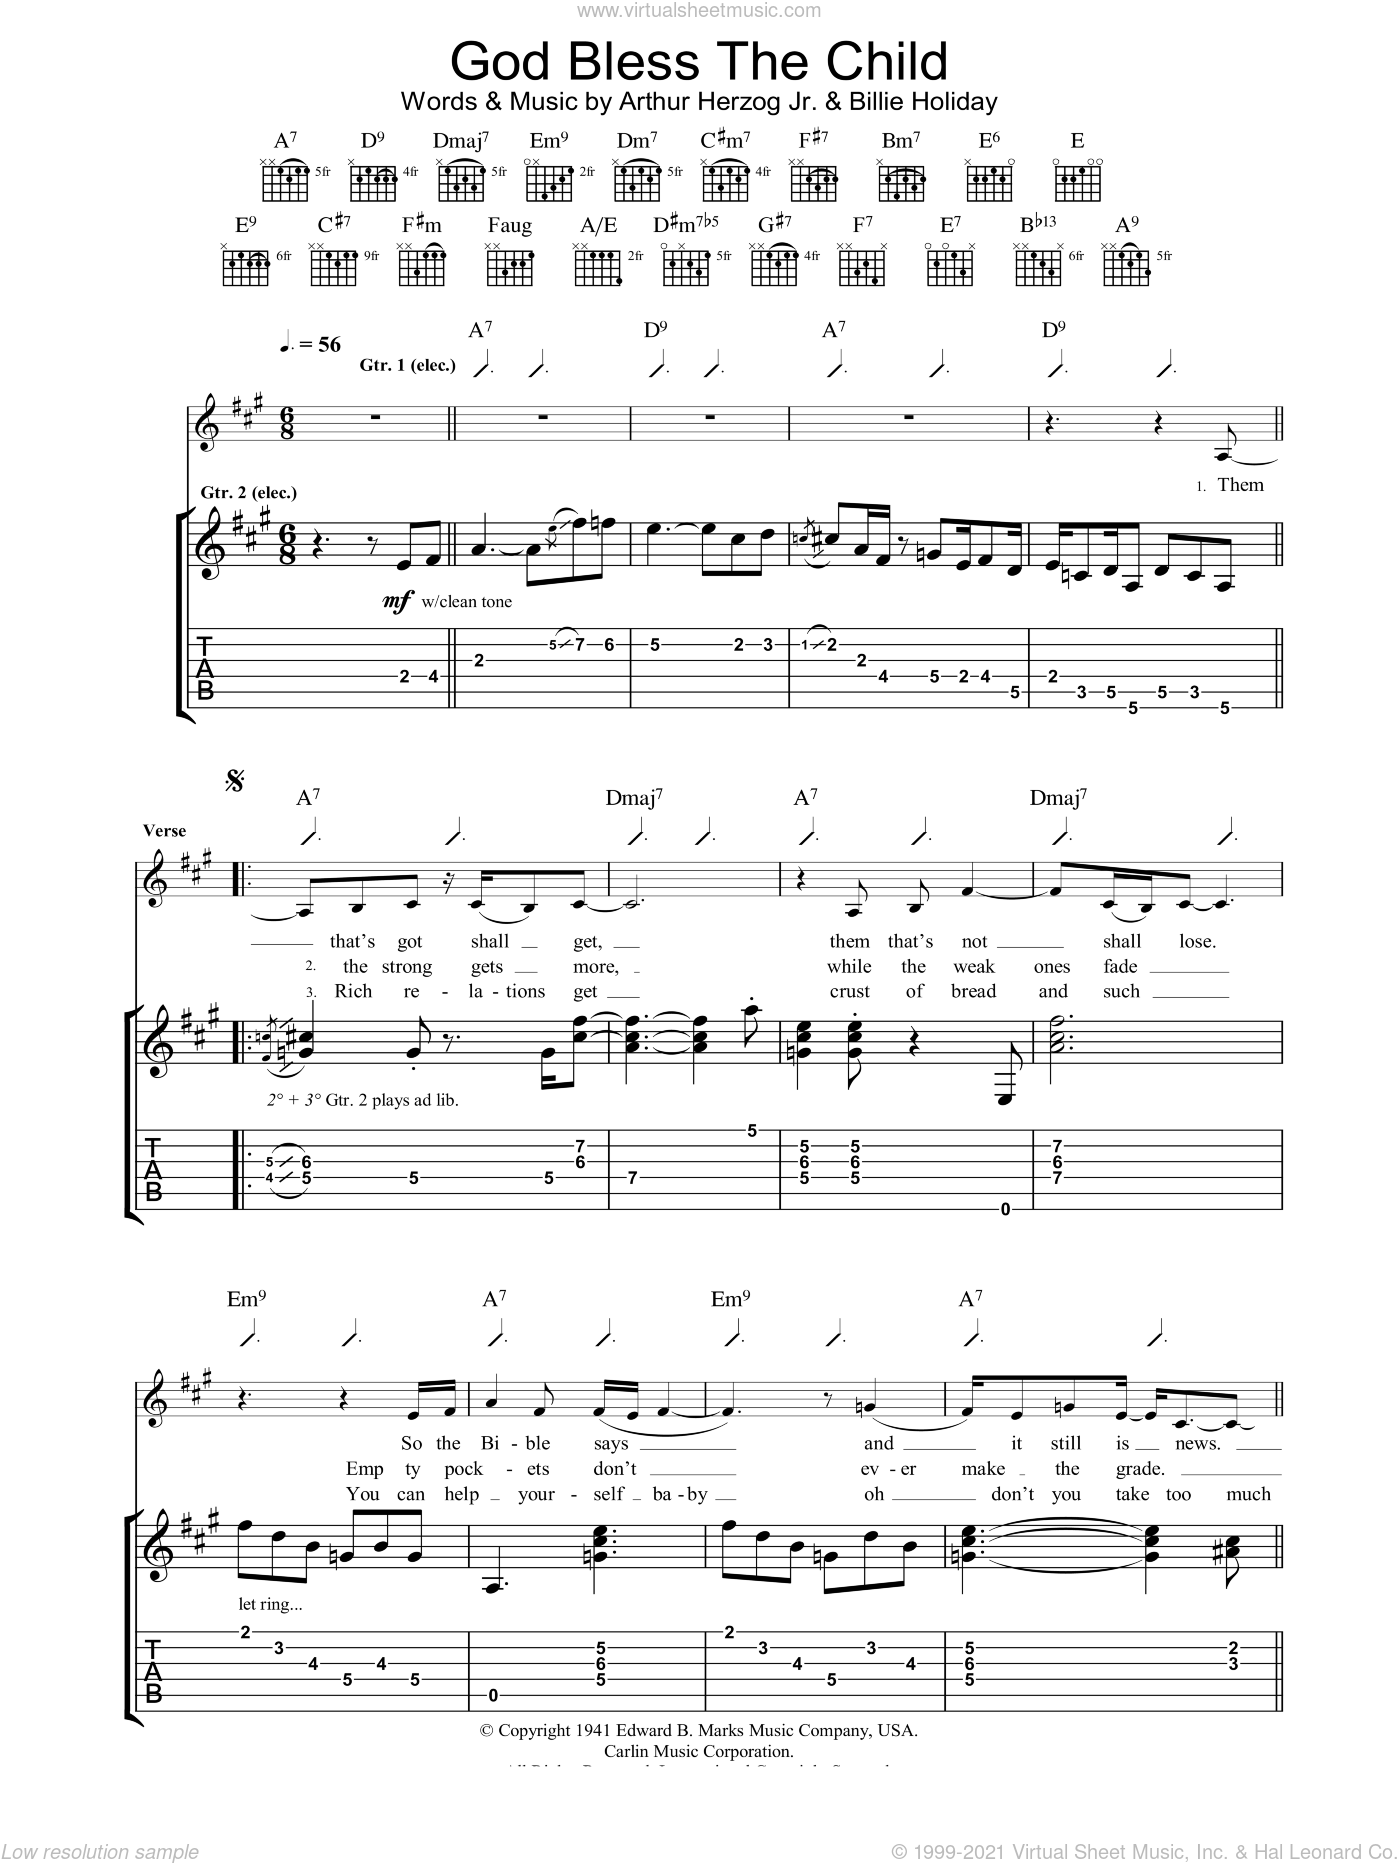 God Bless The Child sheet music for guitar (tablature)  and Eva Cassidy. Score Image Preview.